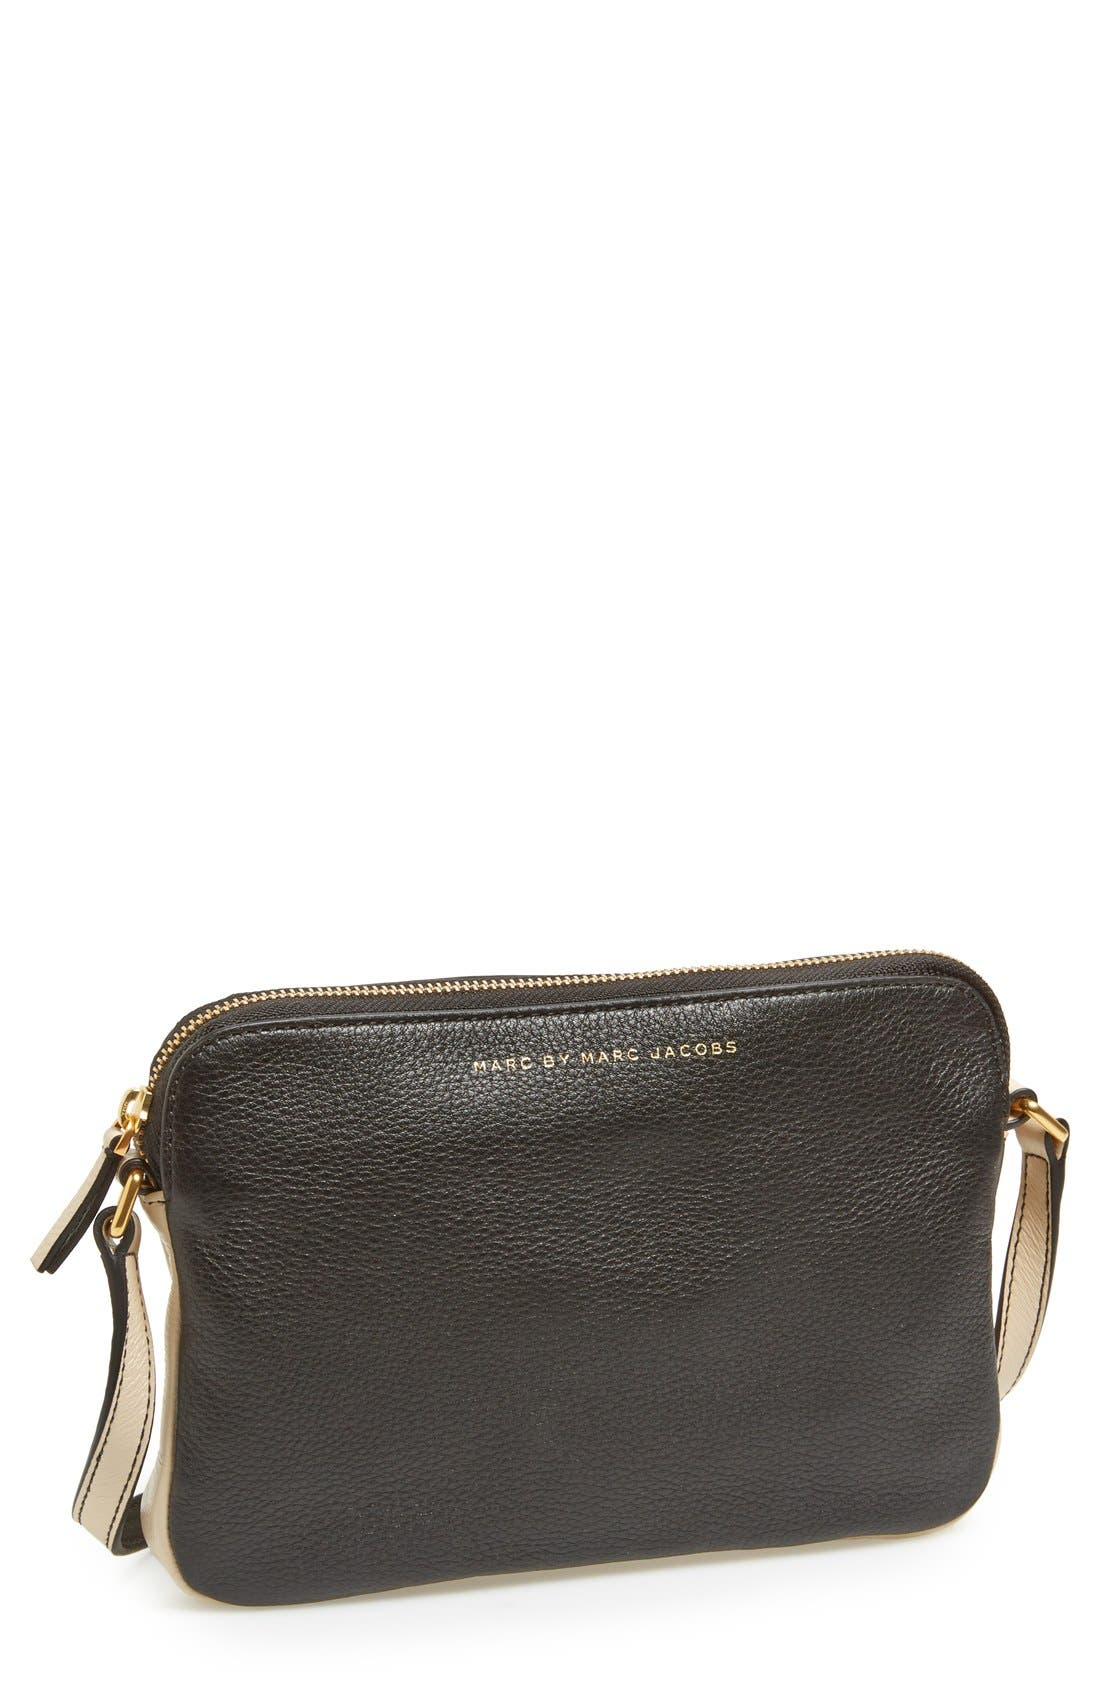 Alternate Image 1 Selected - MARC BY MARC JACOBS 'Sophisticato Dani' Leather Crossbody Bag